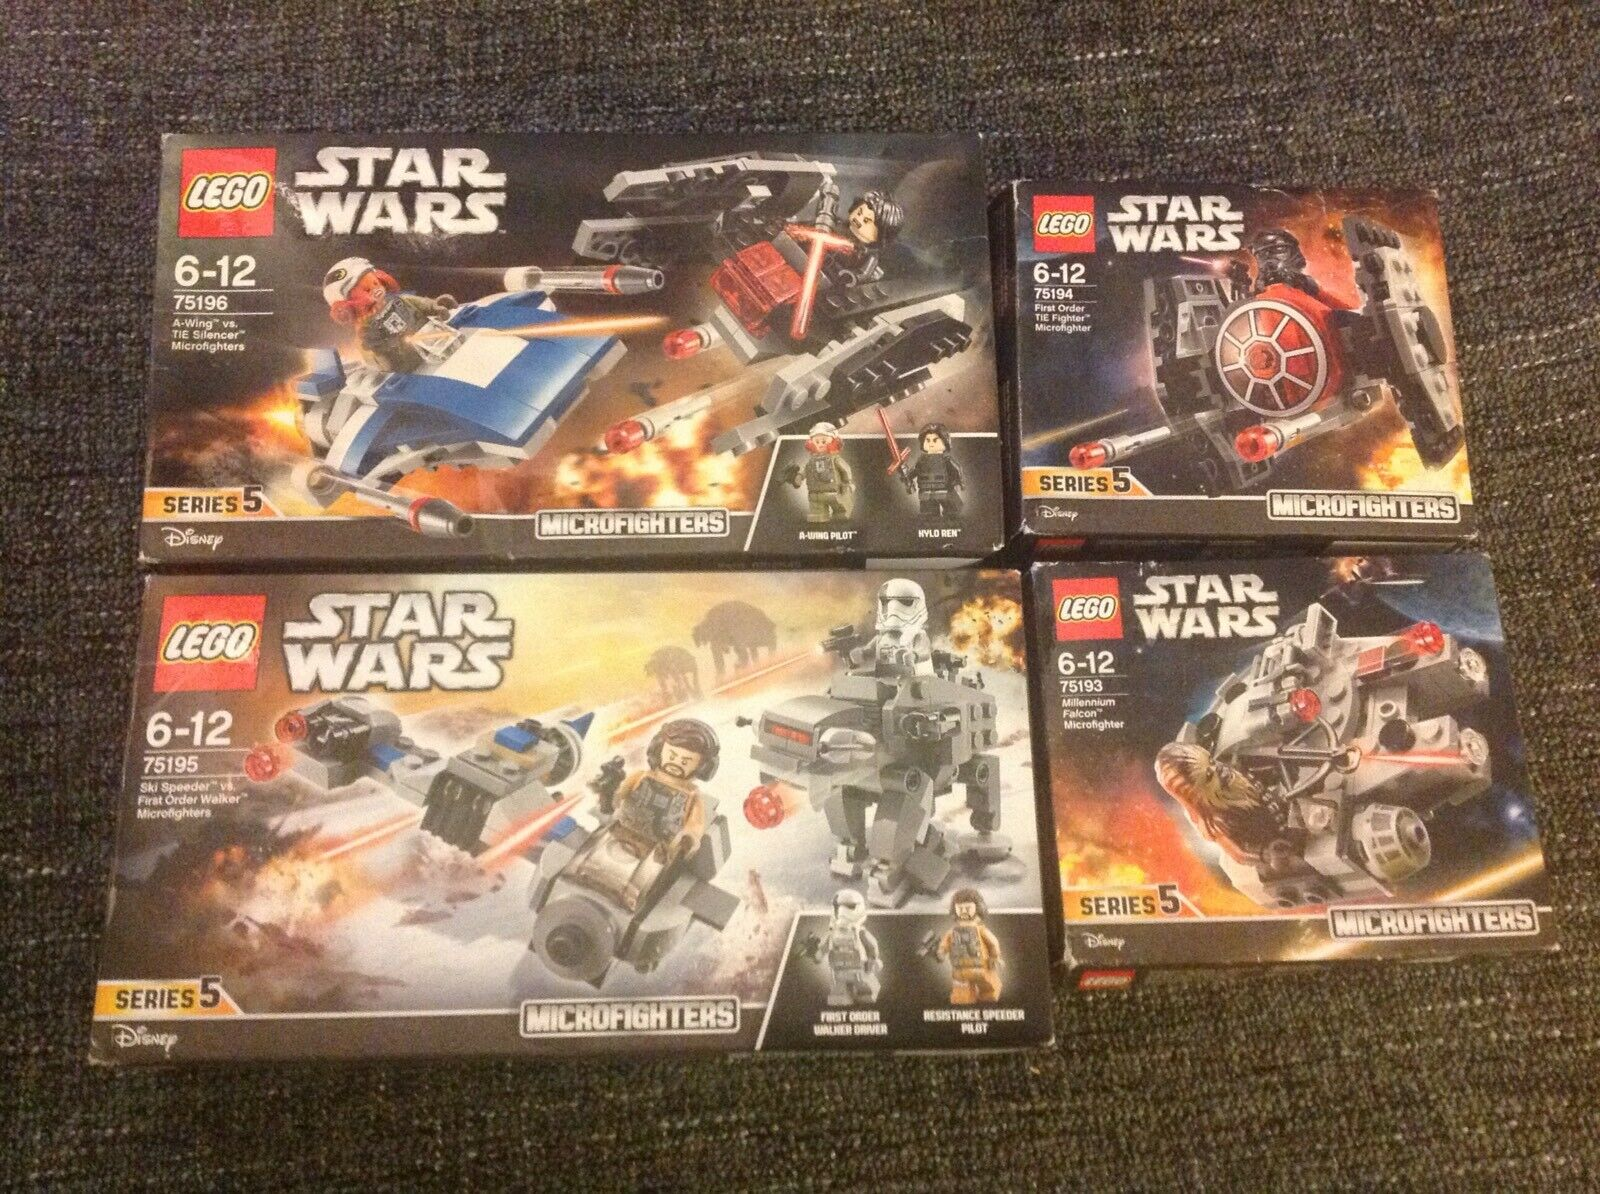 Lego Star Wars Microfighters Series 5 Complete Sets - 75193,75194,75195,75196